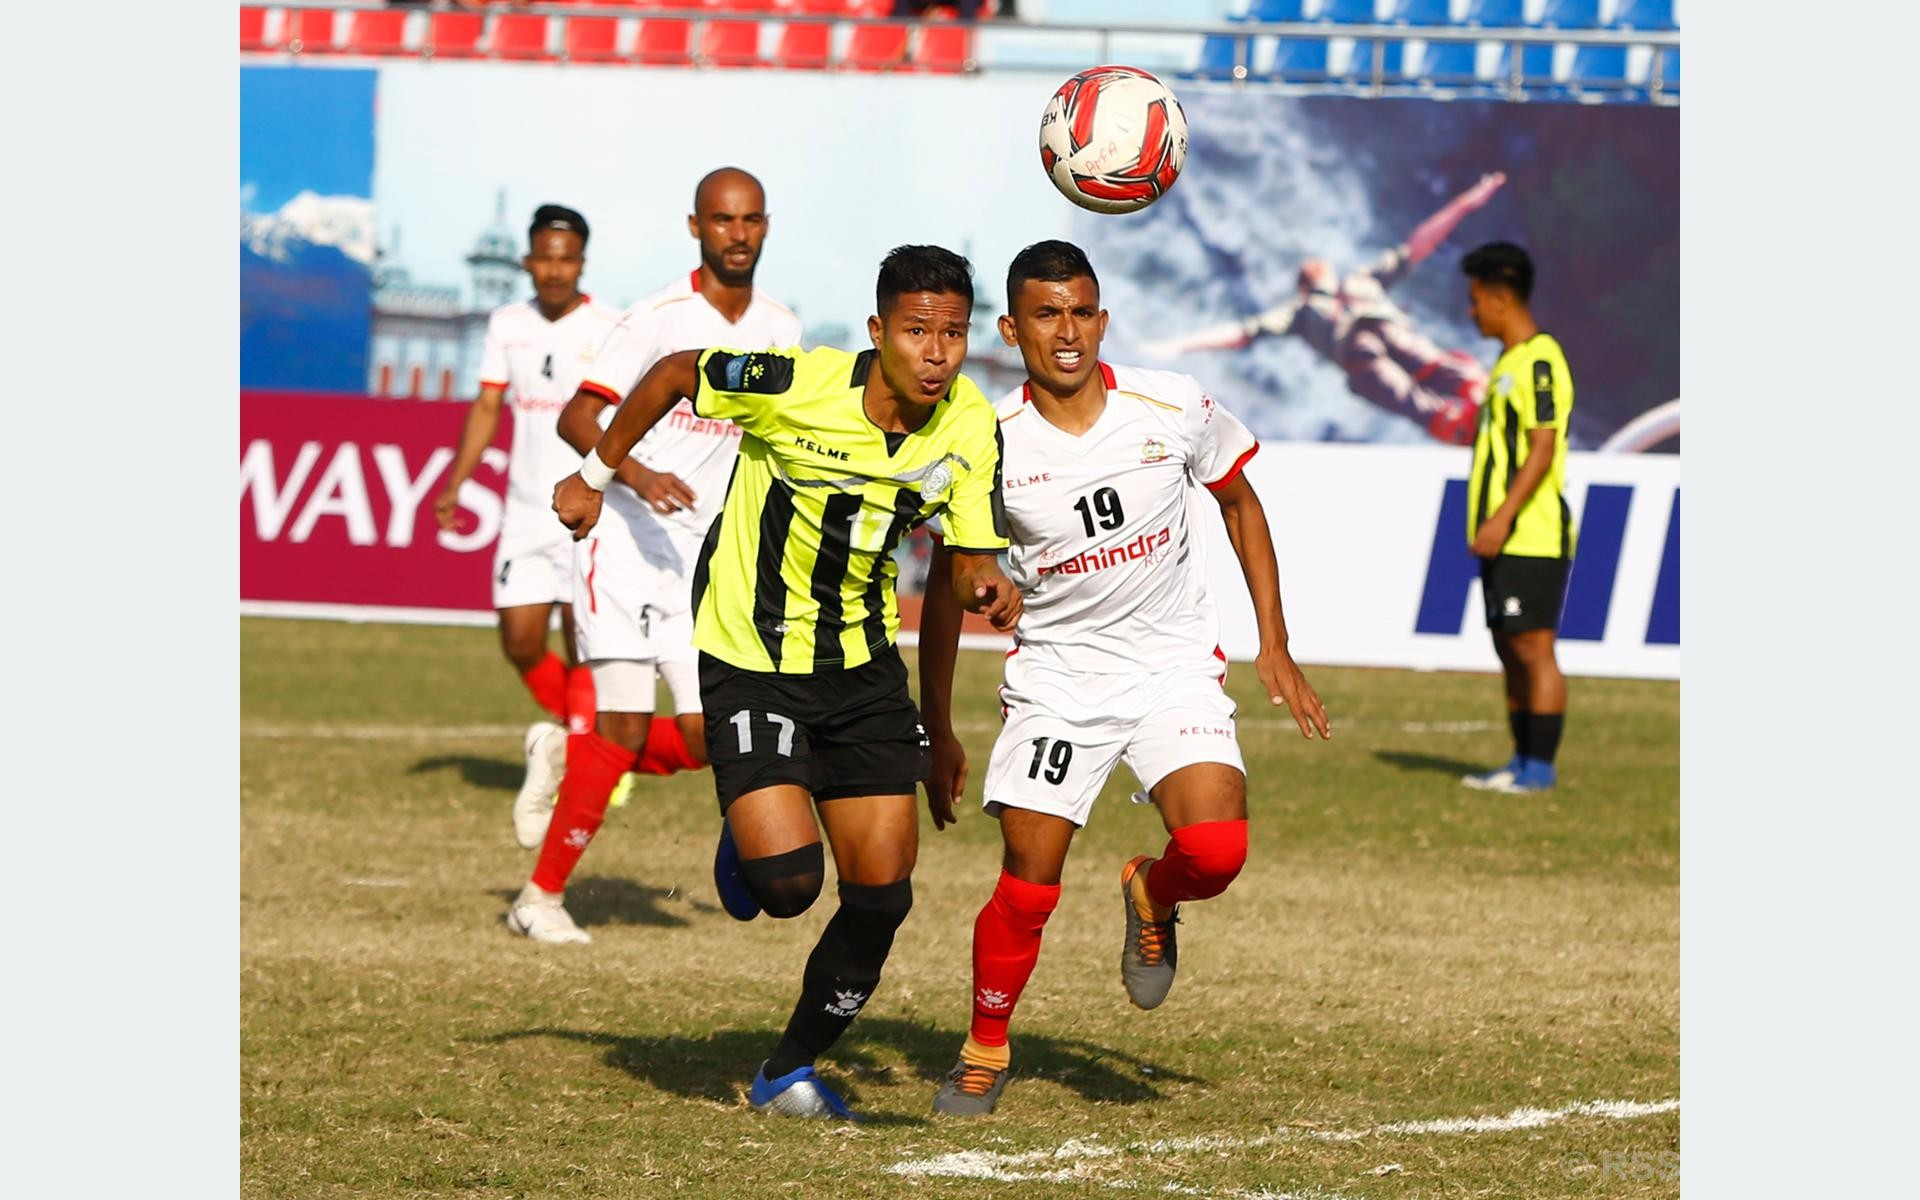 Martyr's Memorial A-Division League 7th phase games to start from Friday